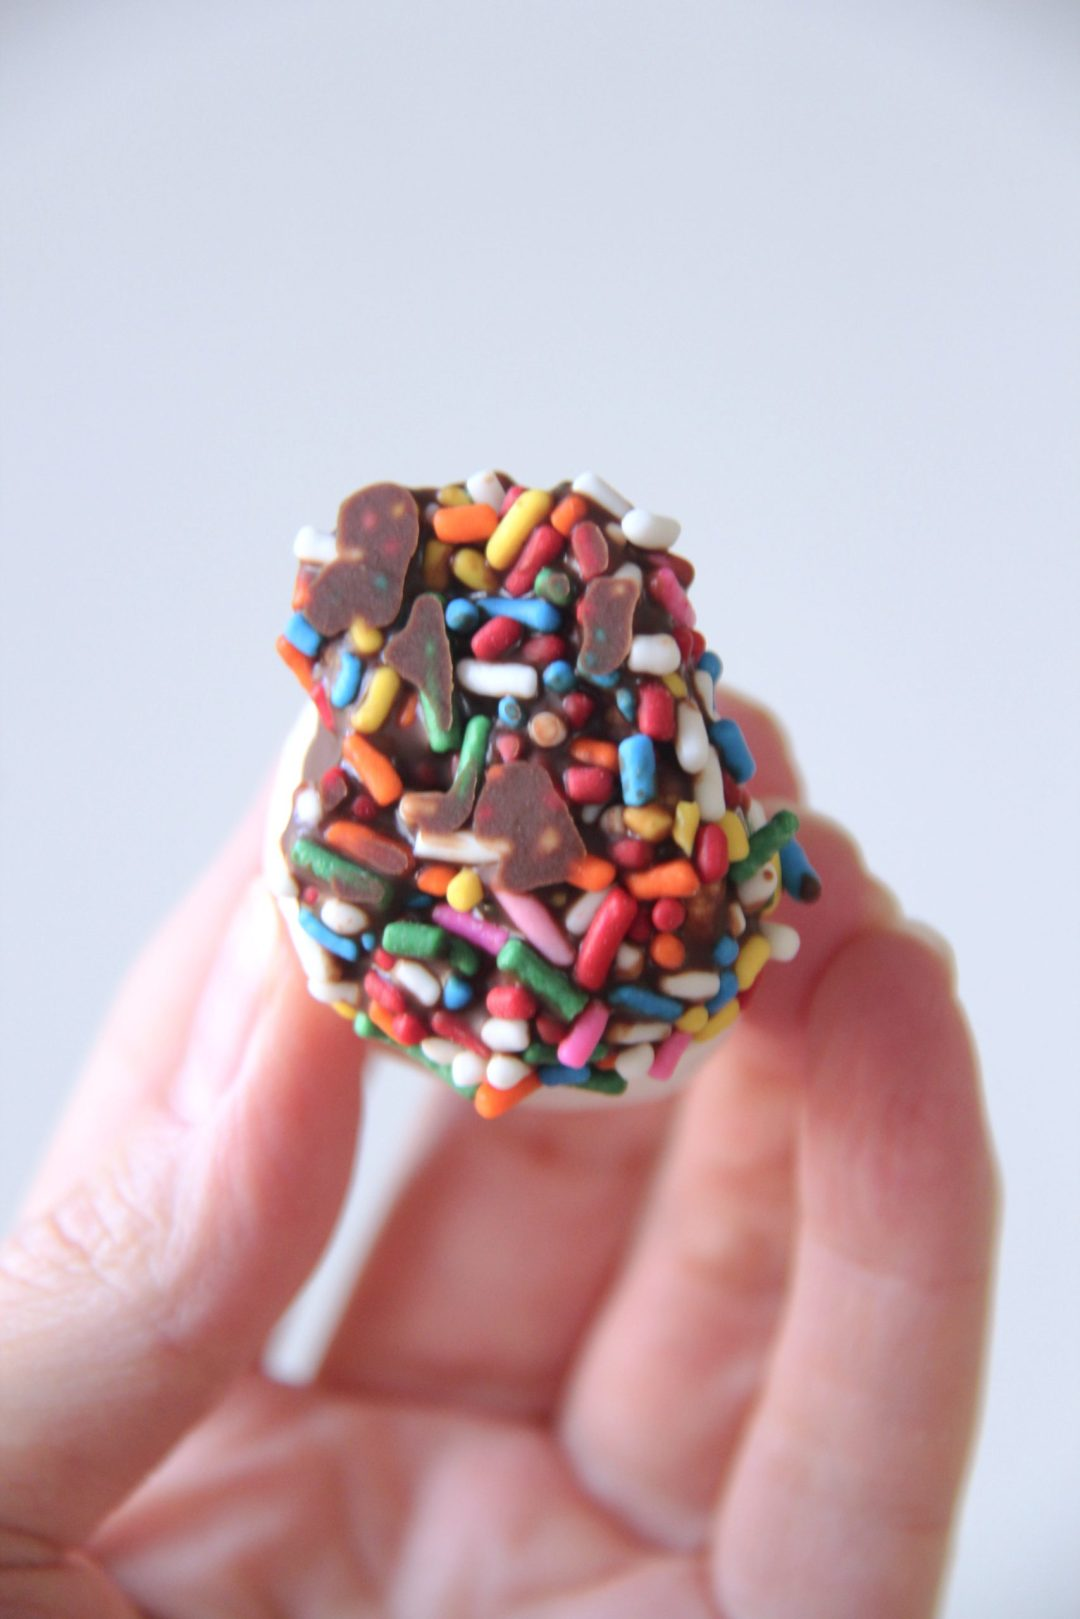 Want a kid-approved treat that's as easy as it is delicious? Try your hand at chocolate covered marshmallows with rainbow sprinkles. | madewithlev.com#cookingwithkids #desserts #sweettreats #chocolate #marshmallows #dessertrecipes #easydesserts